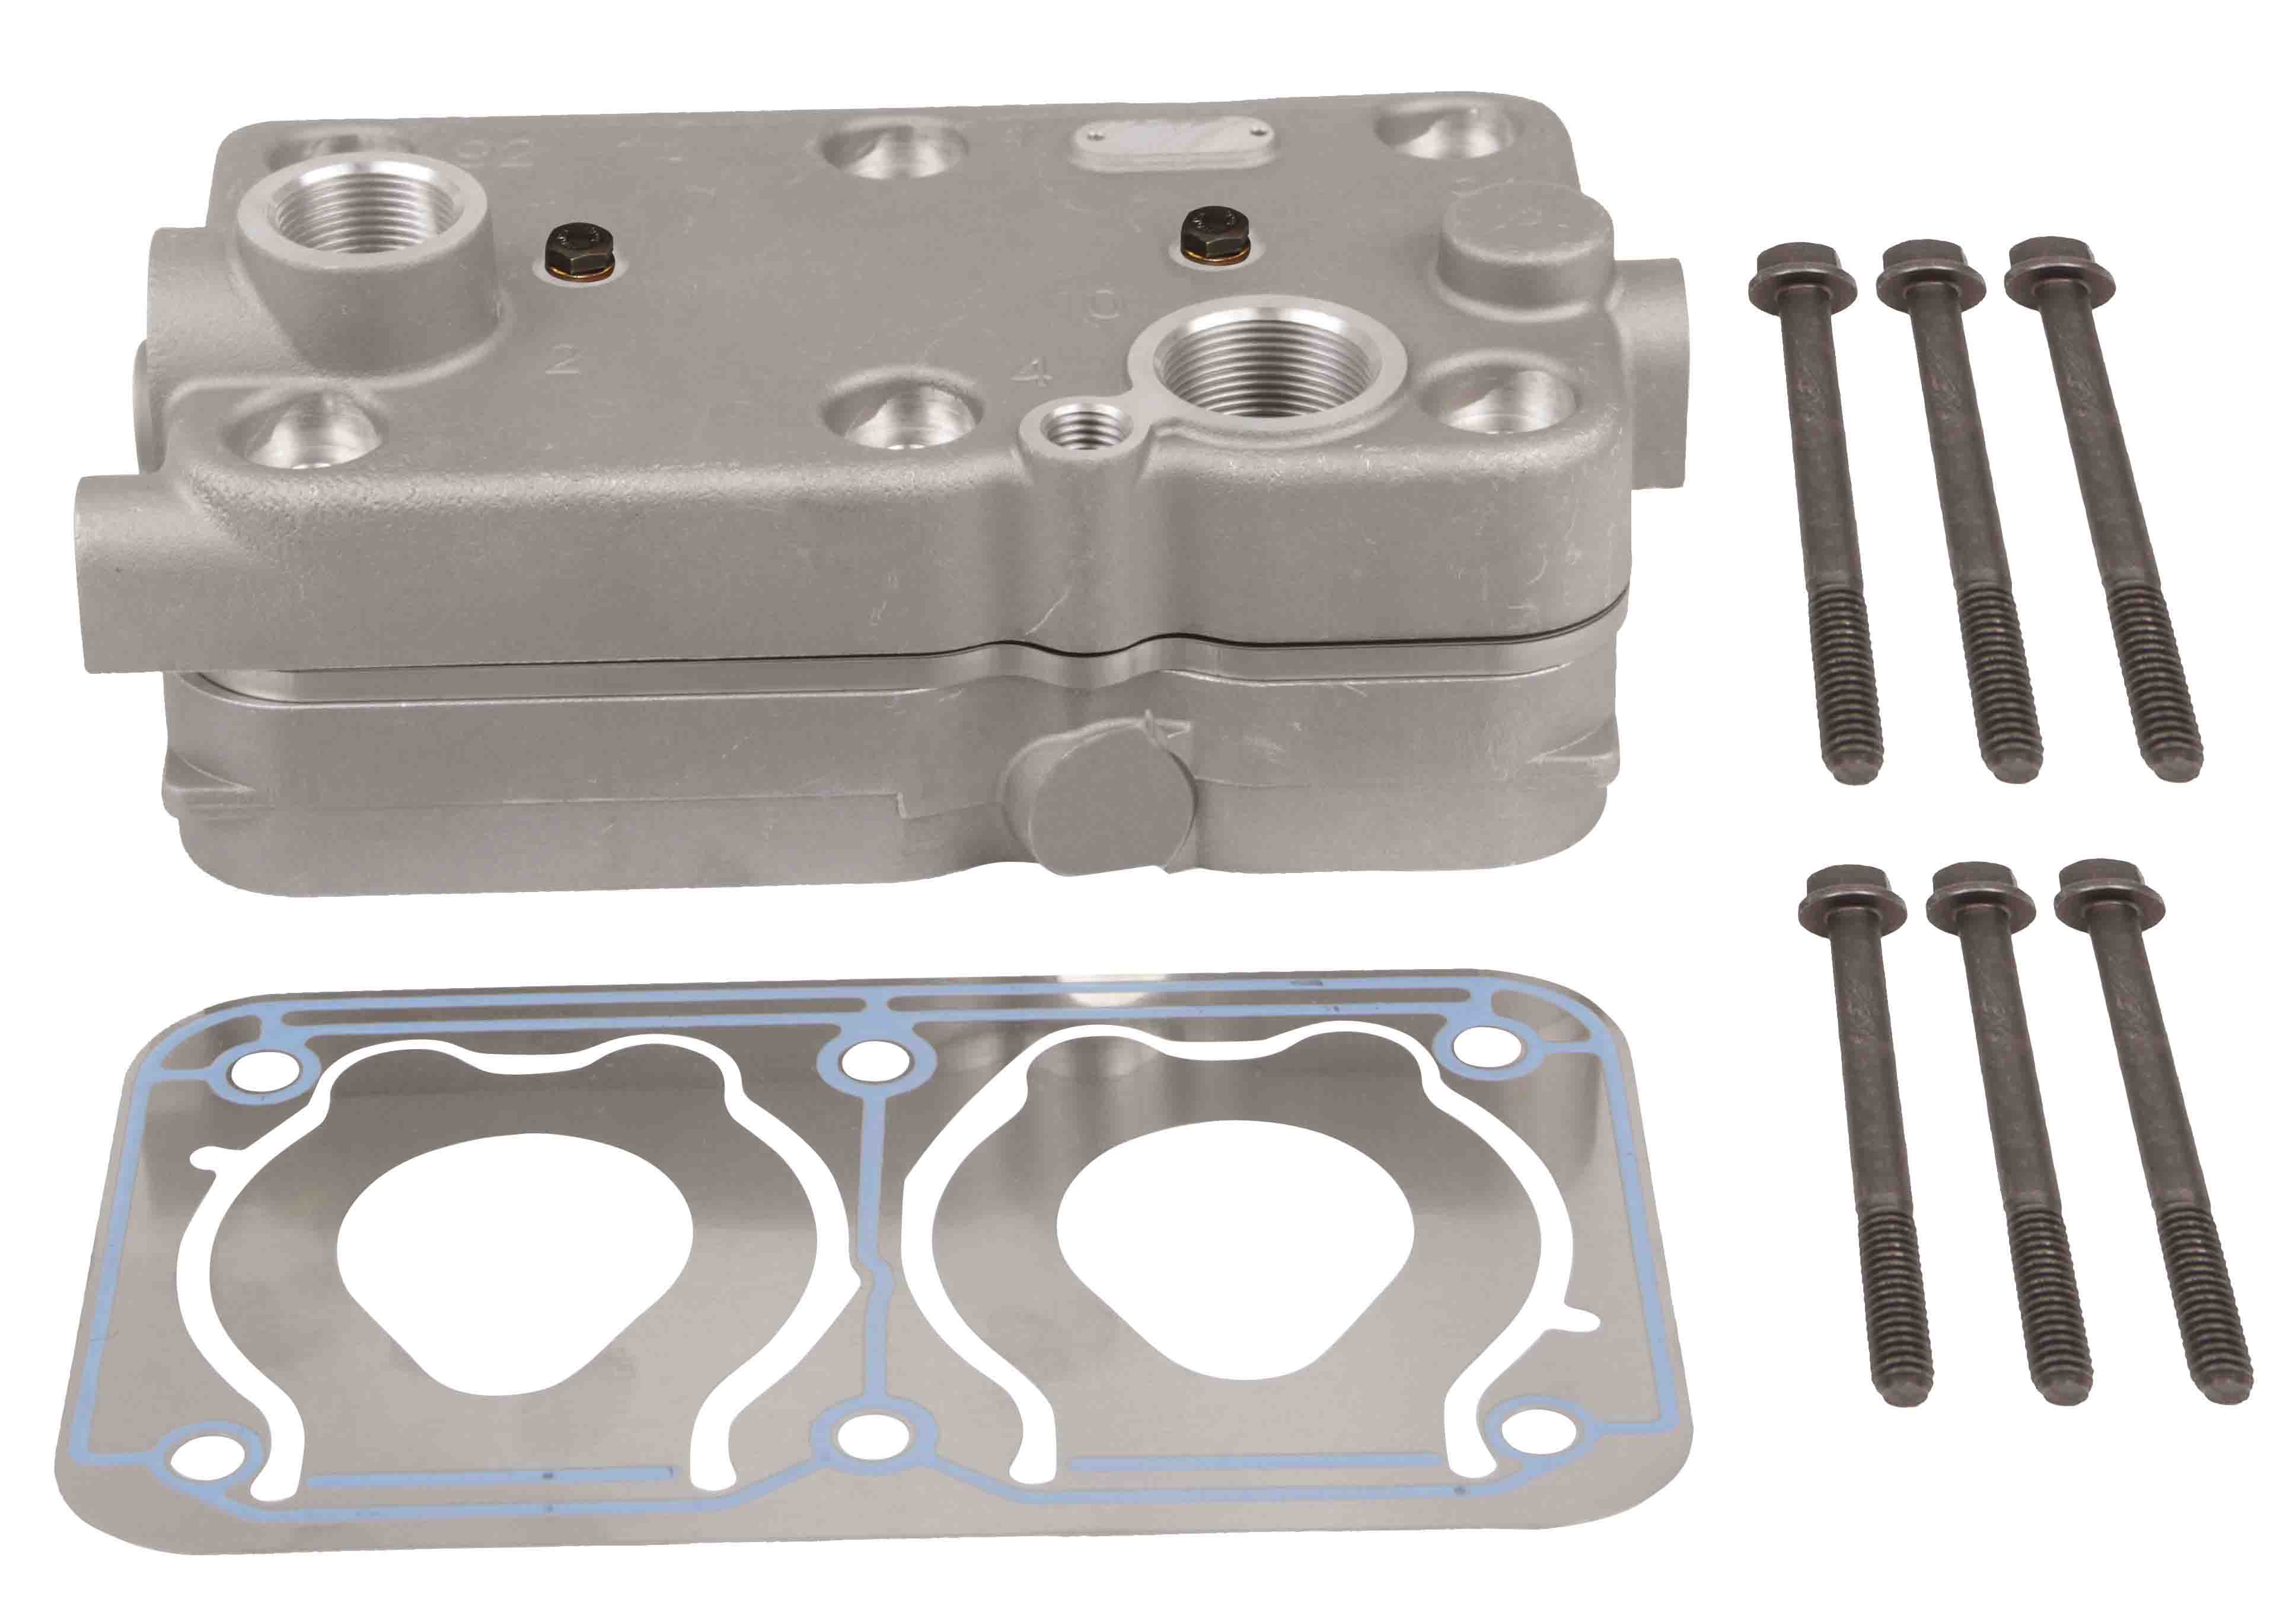 MERCEDES CYLINDER HEAD WIHT PLATE KIT ARC-EXP.304696 0011302515